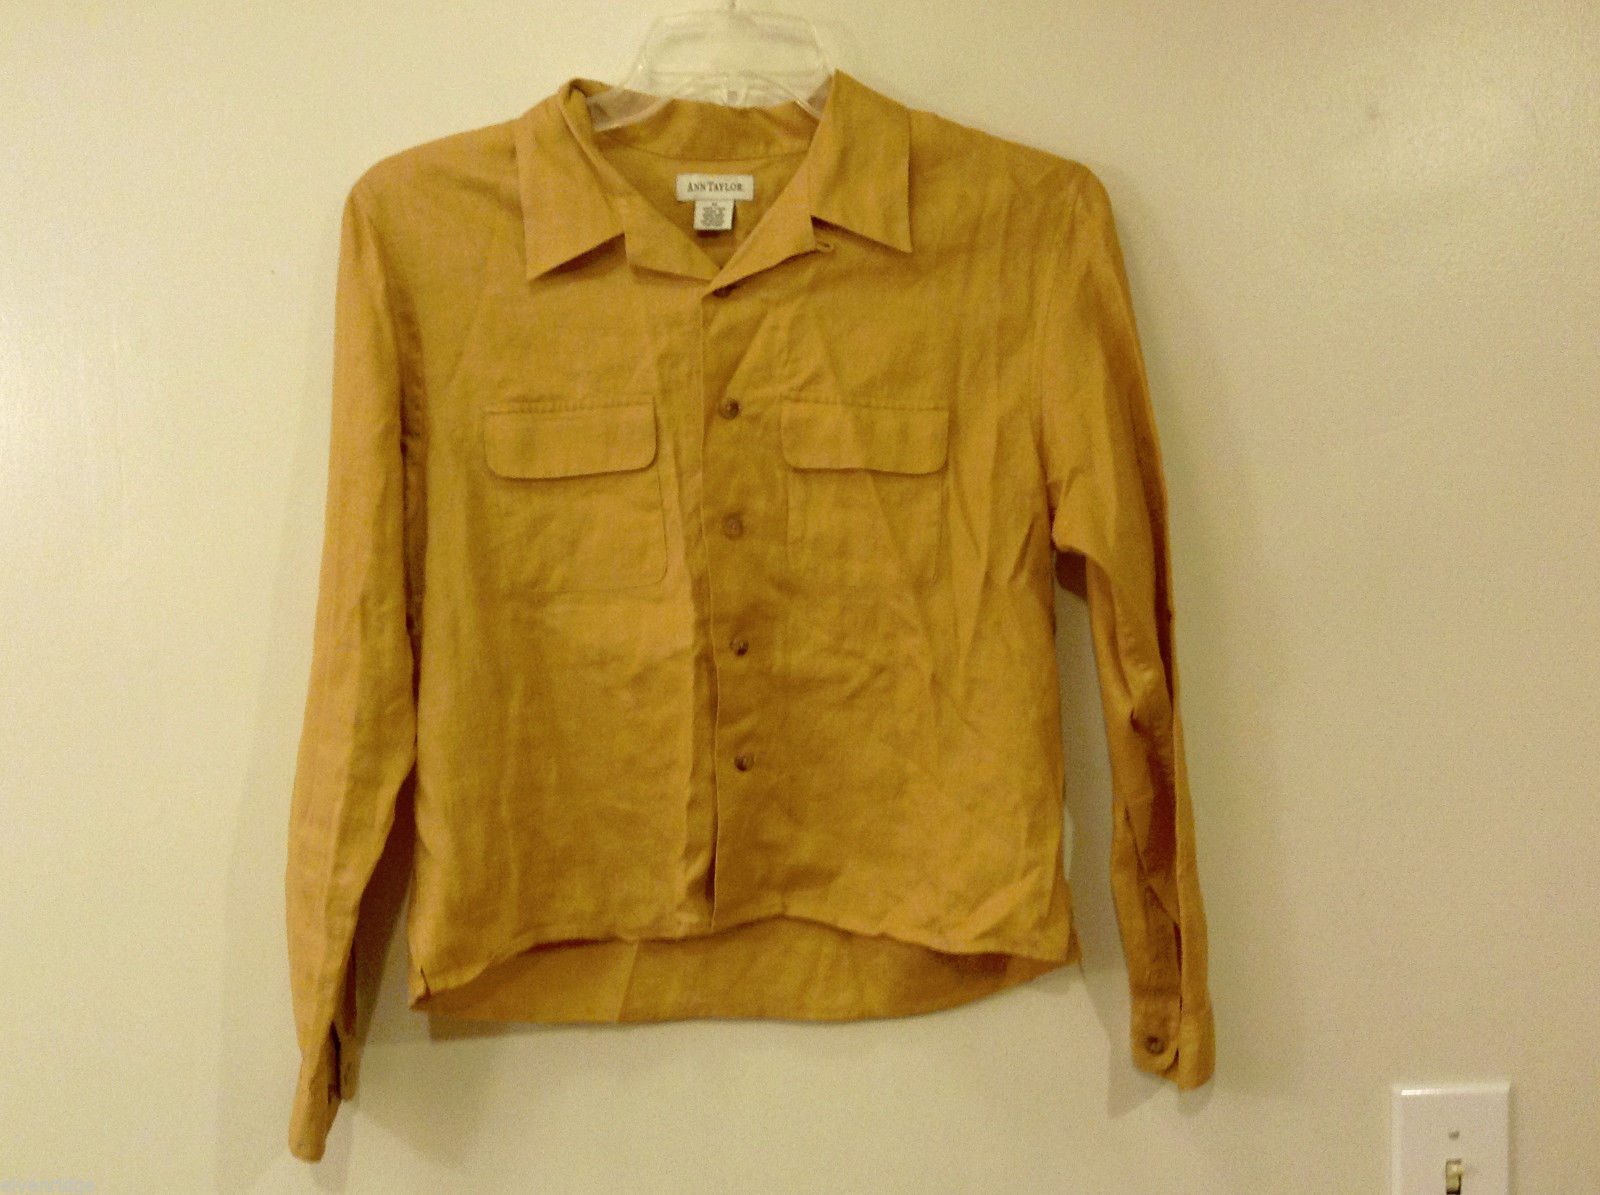 Ann Taylor Women's Size M Utility Shirt Button-Down 100% Linen Mustard Yellow